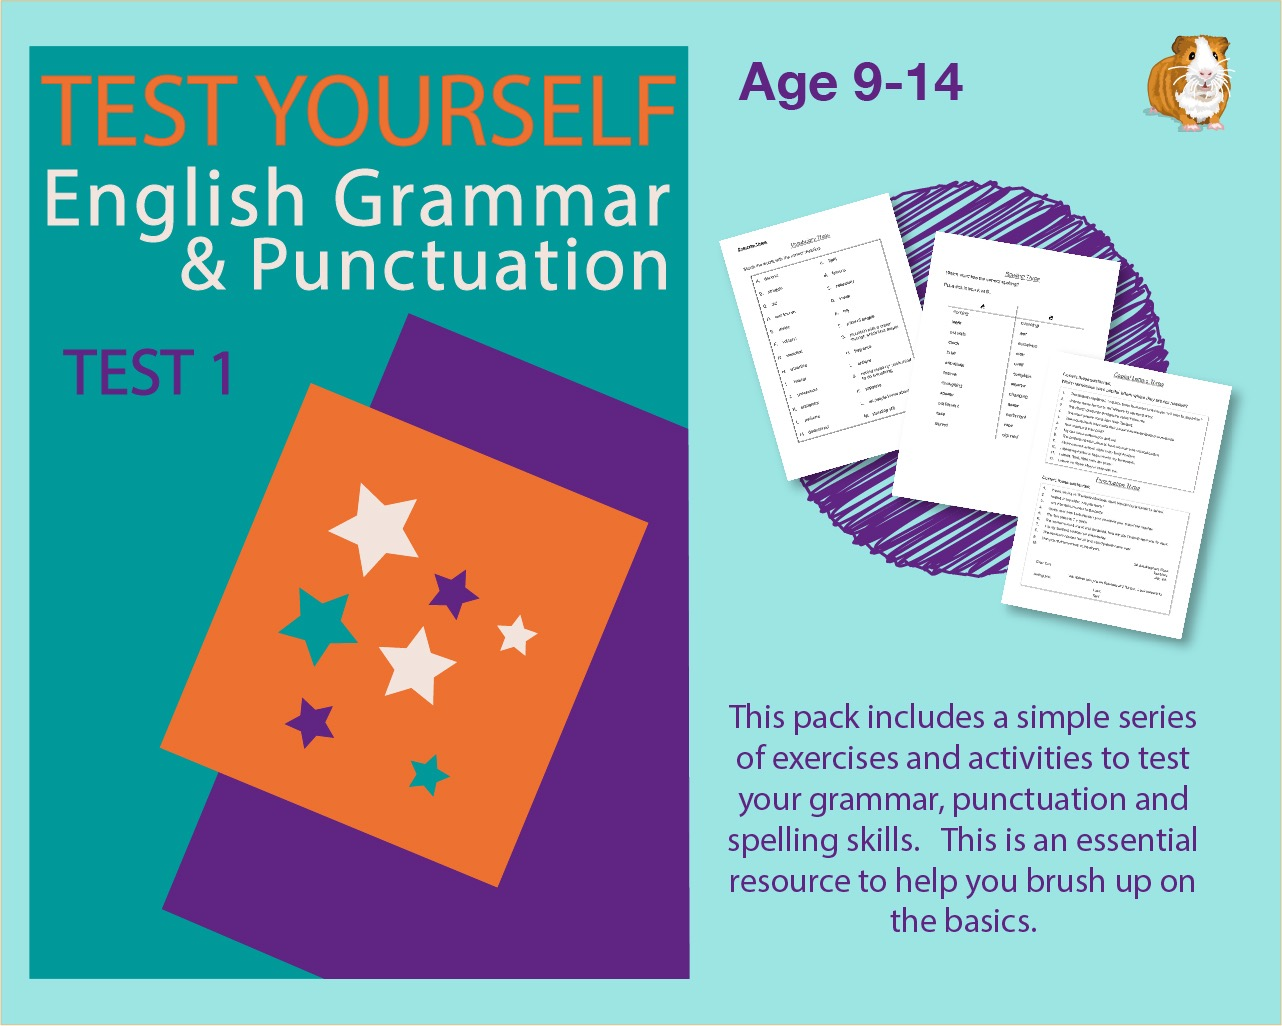 Assessment Test 1 (Test Your English Grammar And Punctuation Skills) 9-14 years